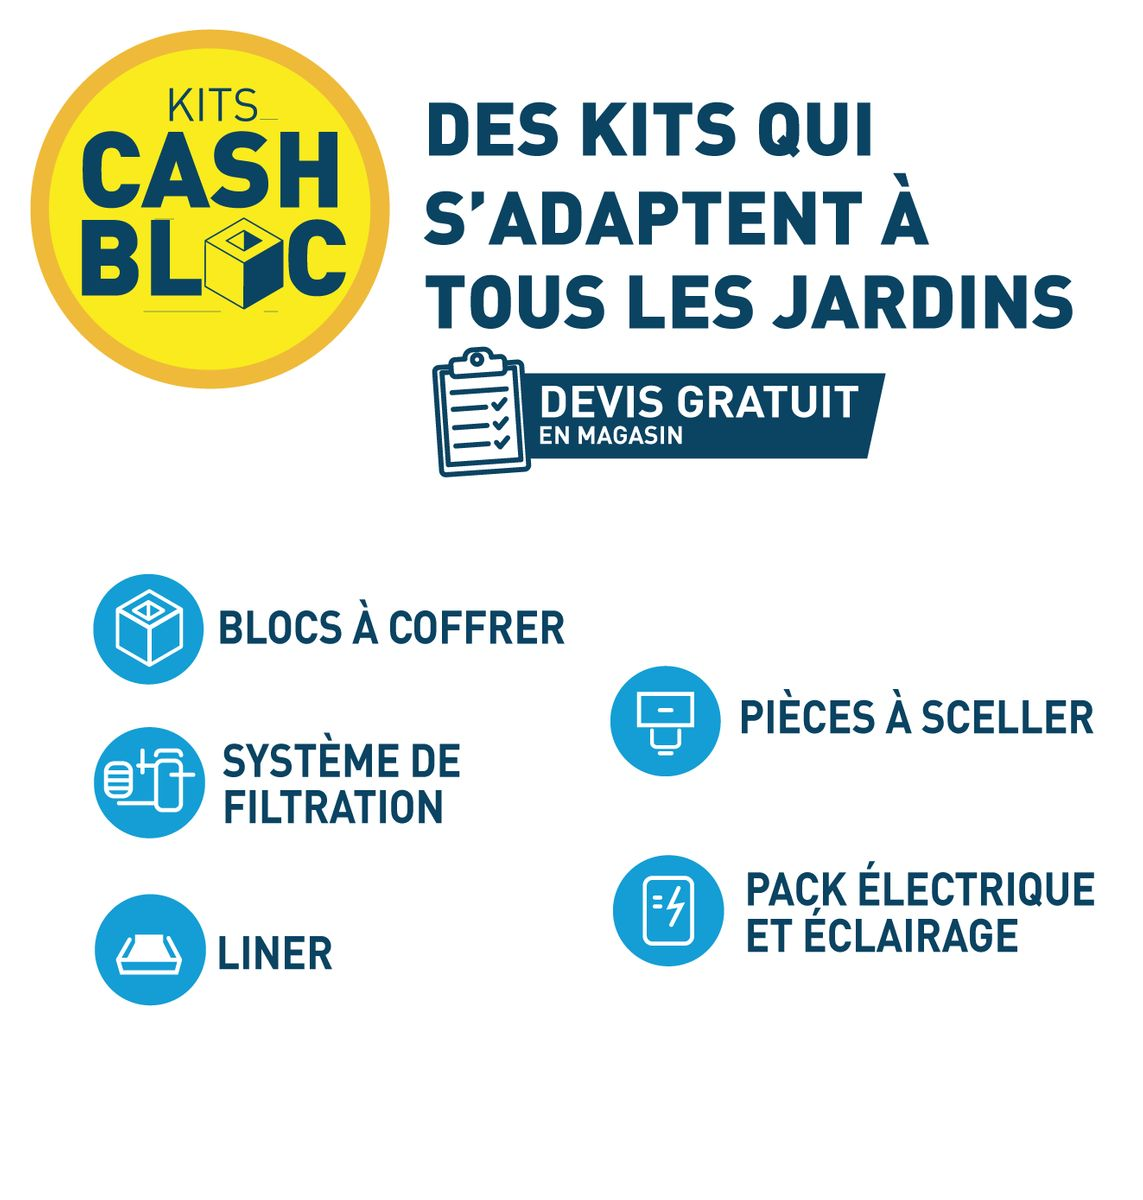 KIT PISCINE CASH BLOC